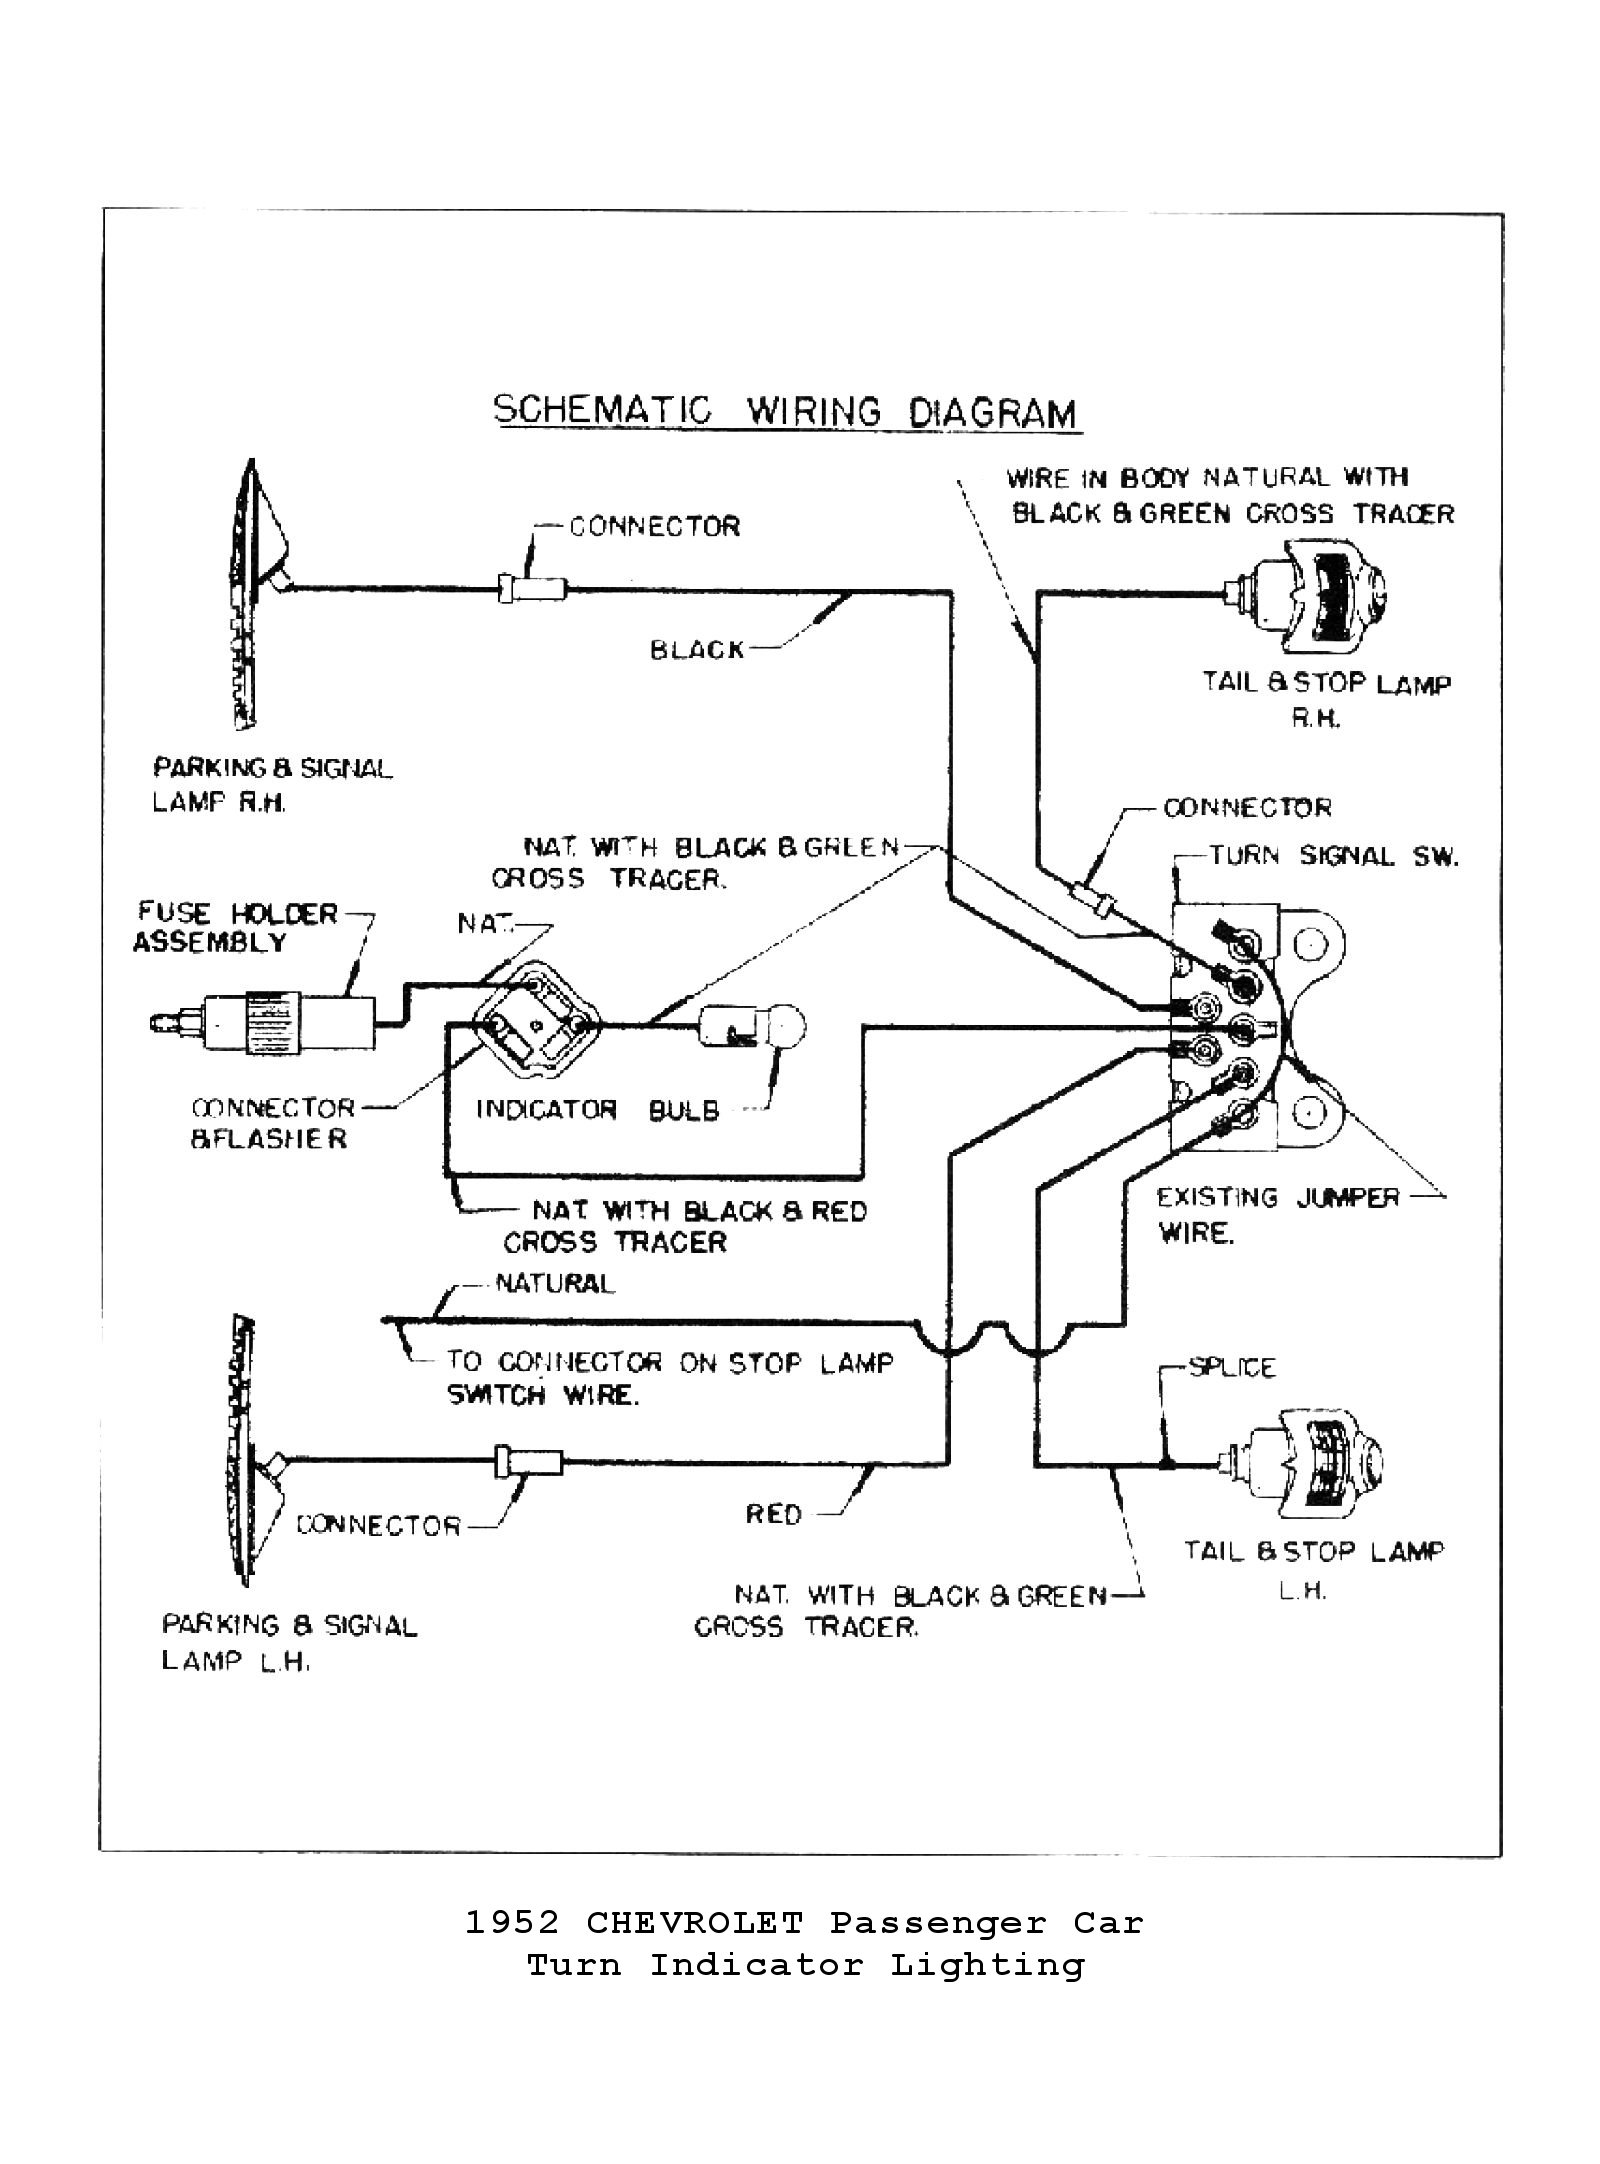 1950 Chevy Headlight Switch Wiring Diagram Free For 1956 Harness Plug Ing Into 1952 Simple Diagrams Rh 8 Studio011 De Gm 55